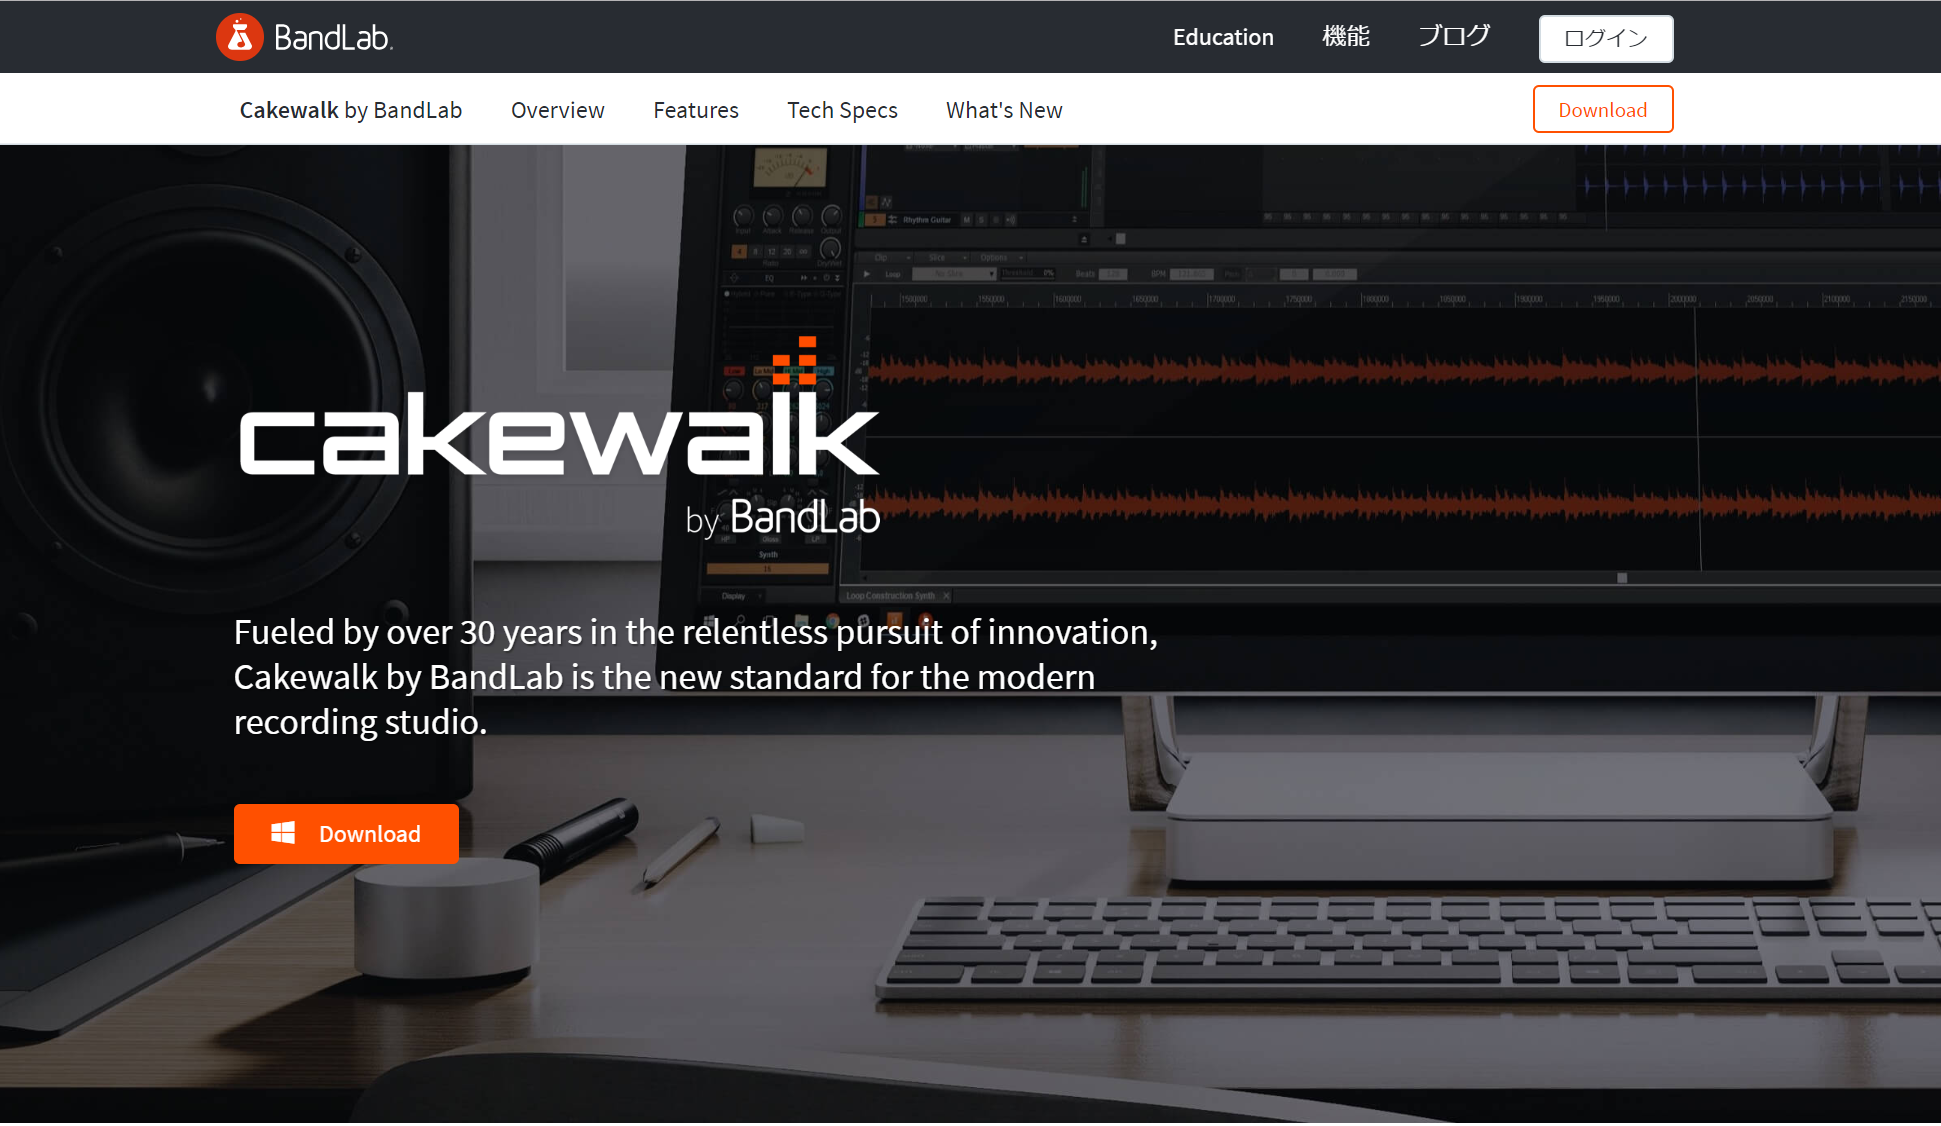 cakewalk by bandlab 日本 語